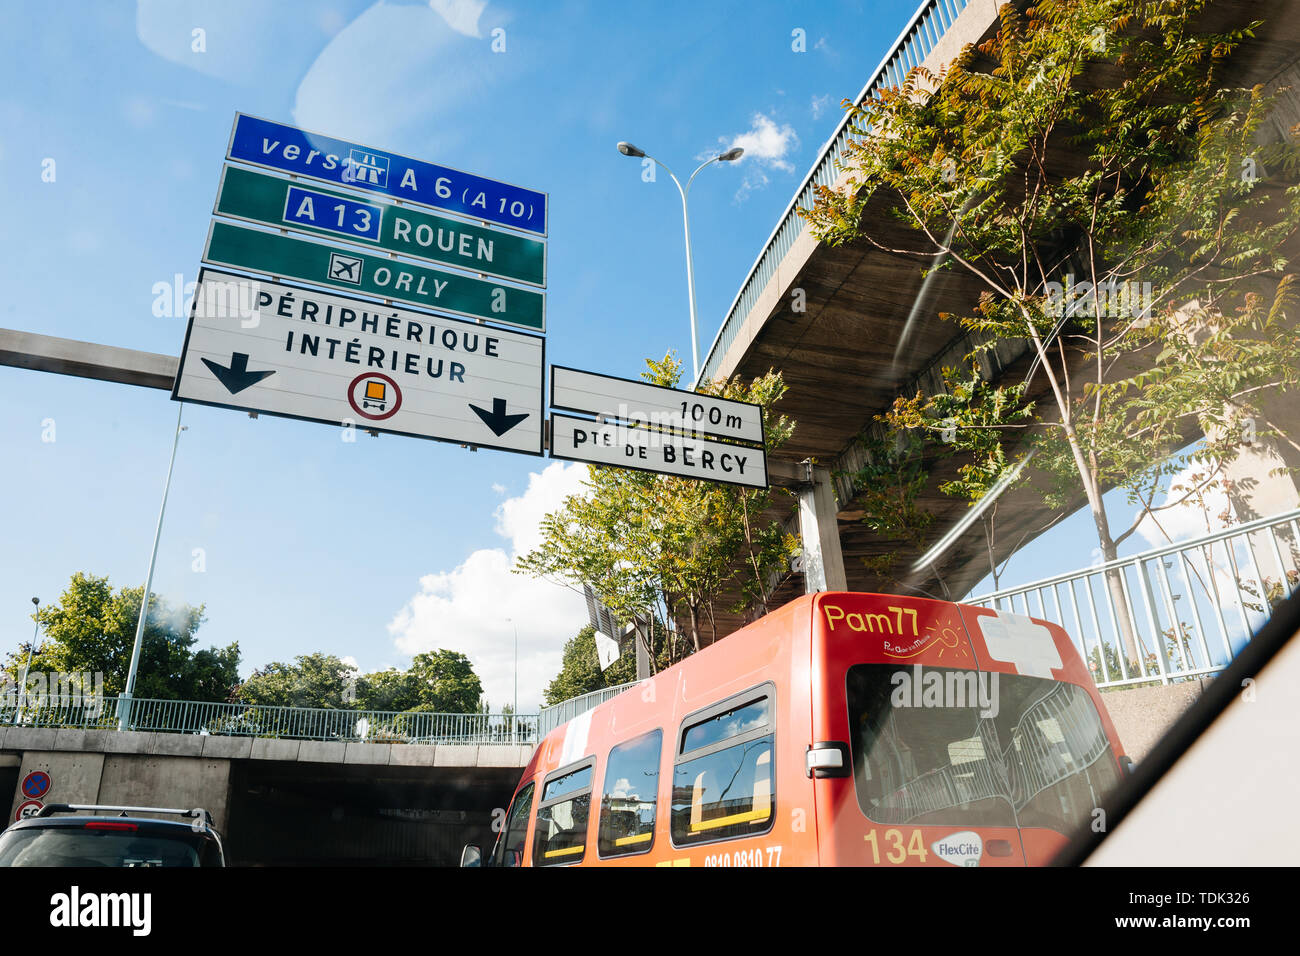 Paris, France - May 14, 2014: Driver POV point of view personal perspective at the traffic jam front driving cars entering Paris peripherique interieur Roue, A 13, Porte de Bercy - Stock Image